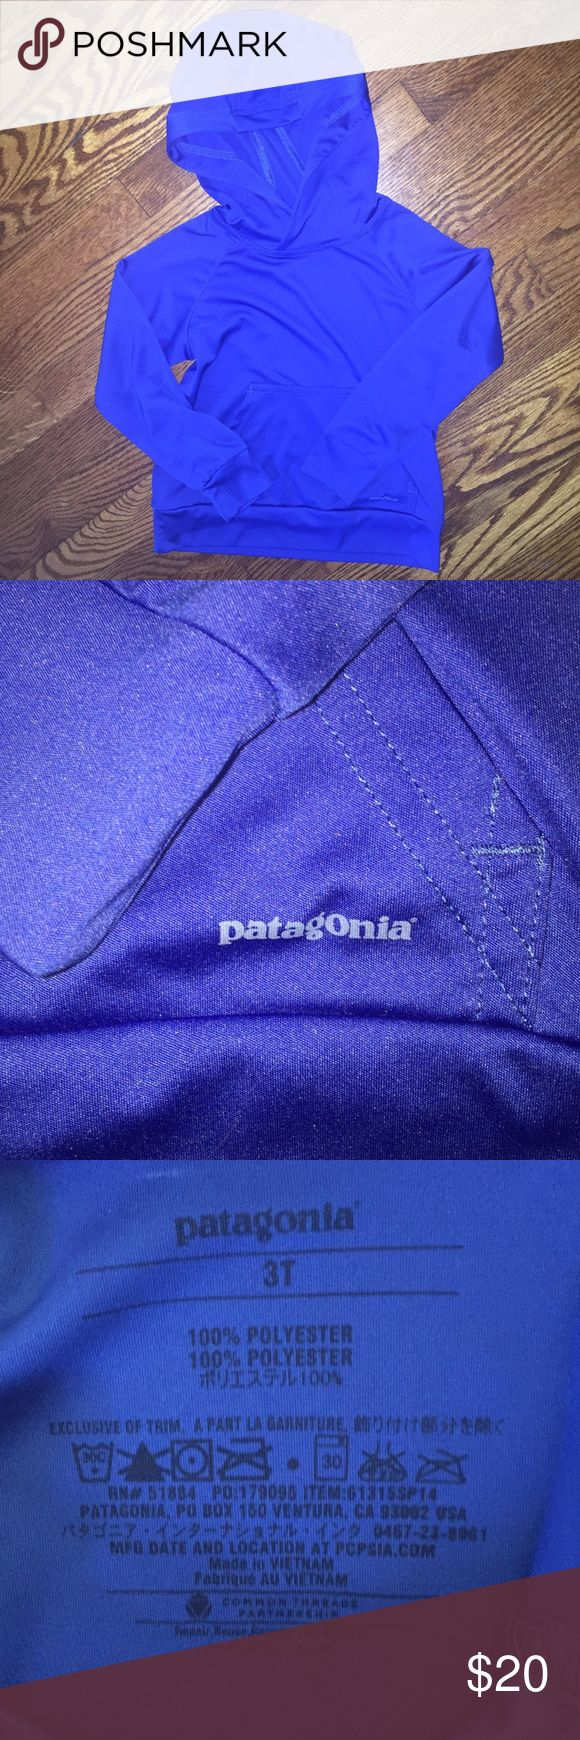 Youth lightweight Patagonia hoodie...Size 3T Boys' or girls' 100% polyester lightweight Patagonia hoodie...Size 3T...no rips, stains or snags...from a smoke free home! Patagonia Shirts & Tops Sweatshirts & Hoodies